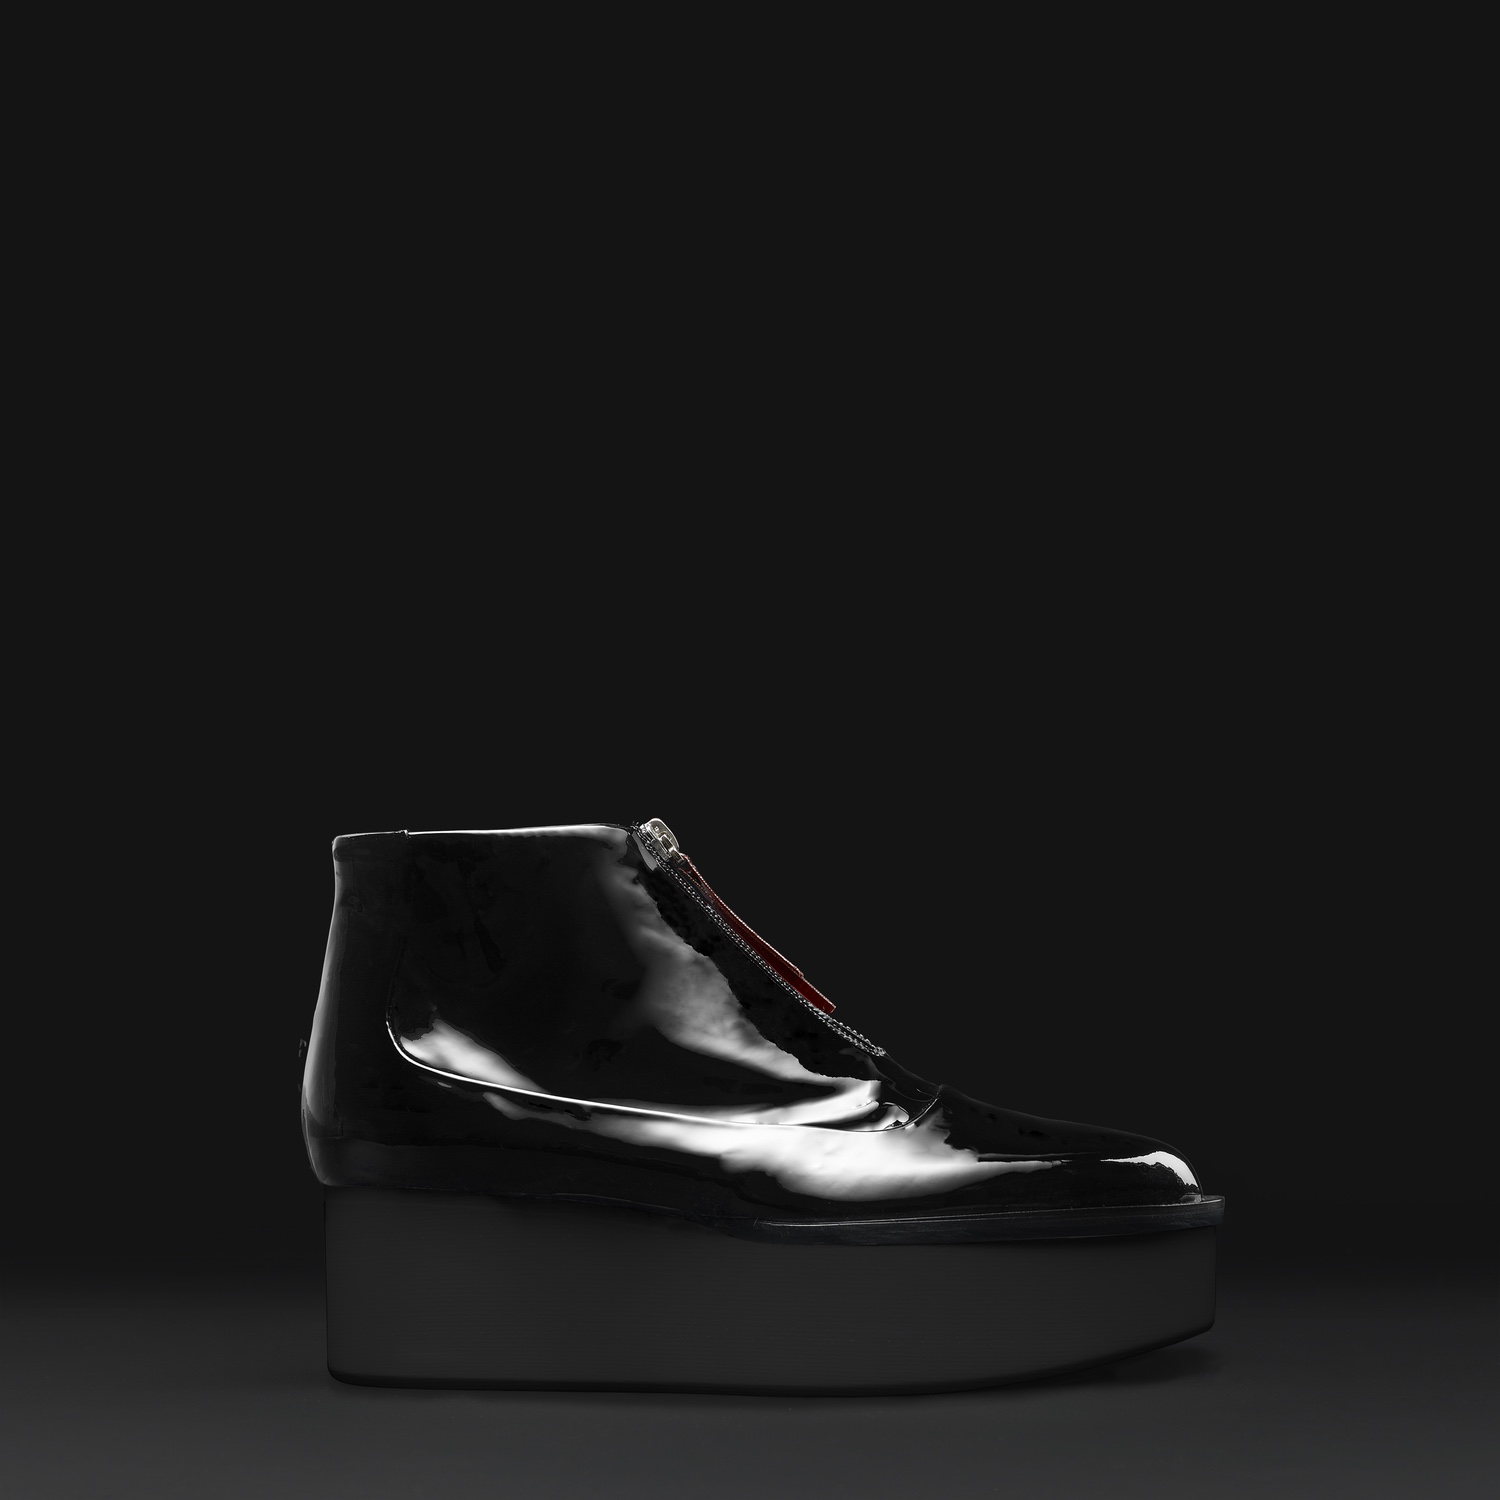 ALAINTONDOWSKI_FALLWINTER2015_SHOES_AT013-B